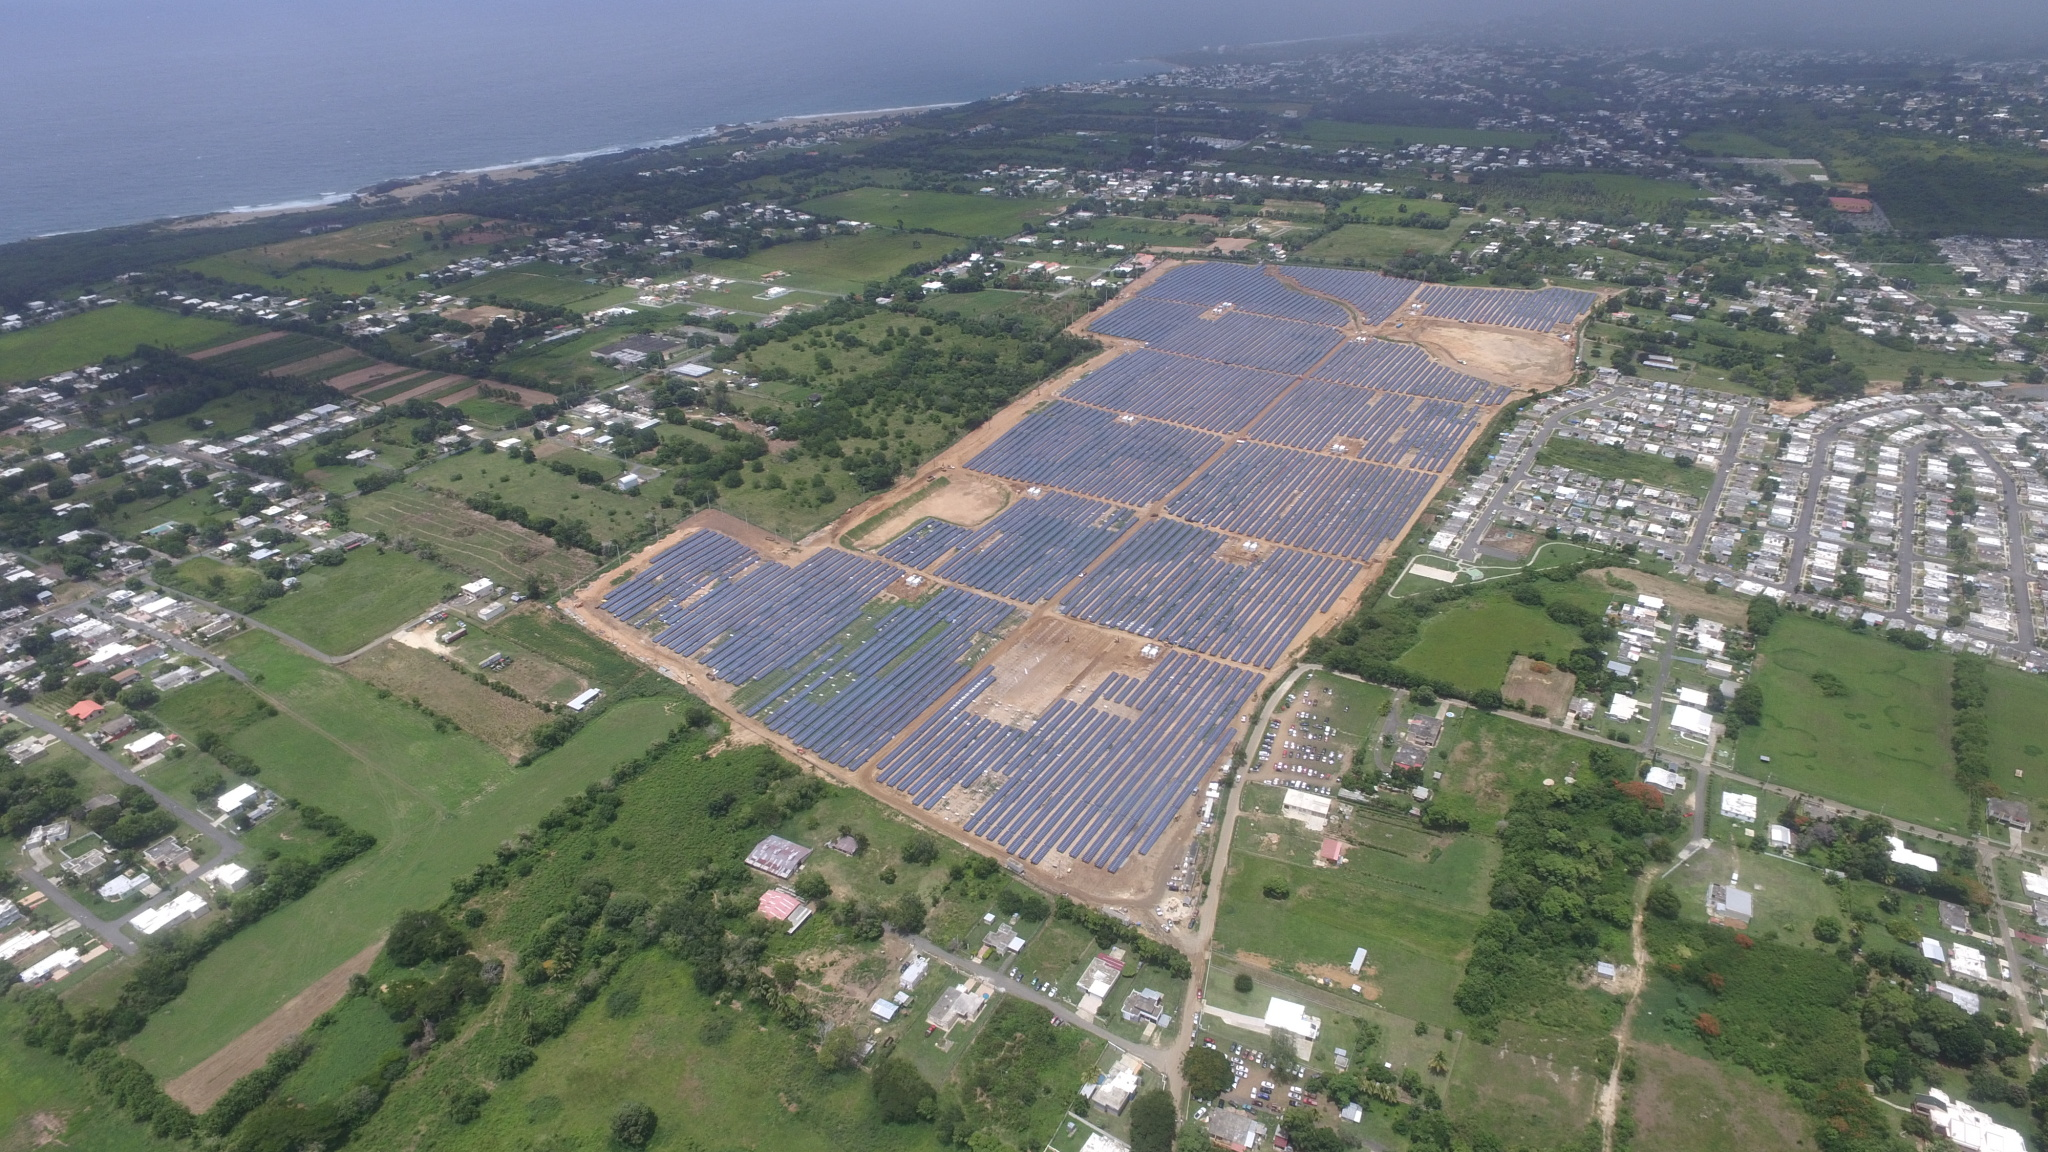 The US$160 million plant has now been connected to the Puerto Rico Electric Power Authority's (PREPA) transmission grid. Credit: Sonnedix